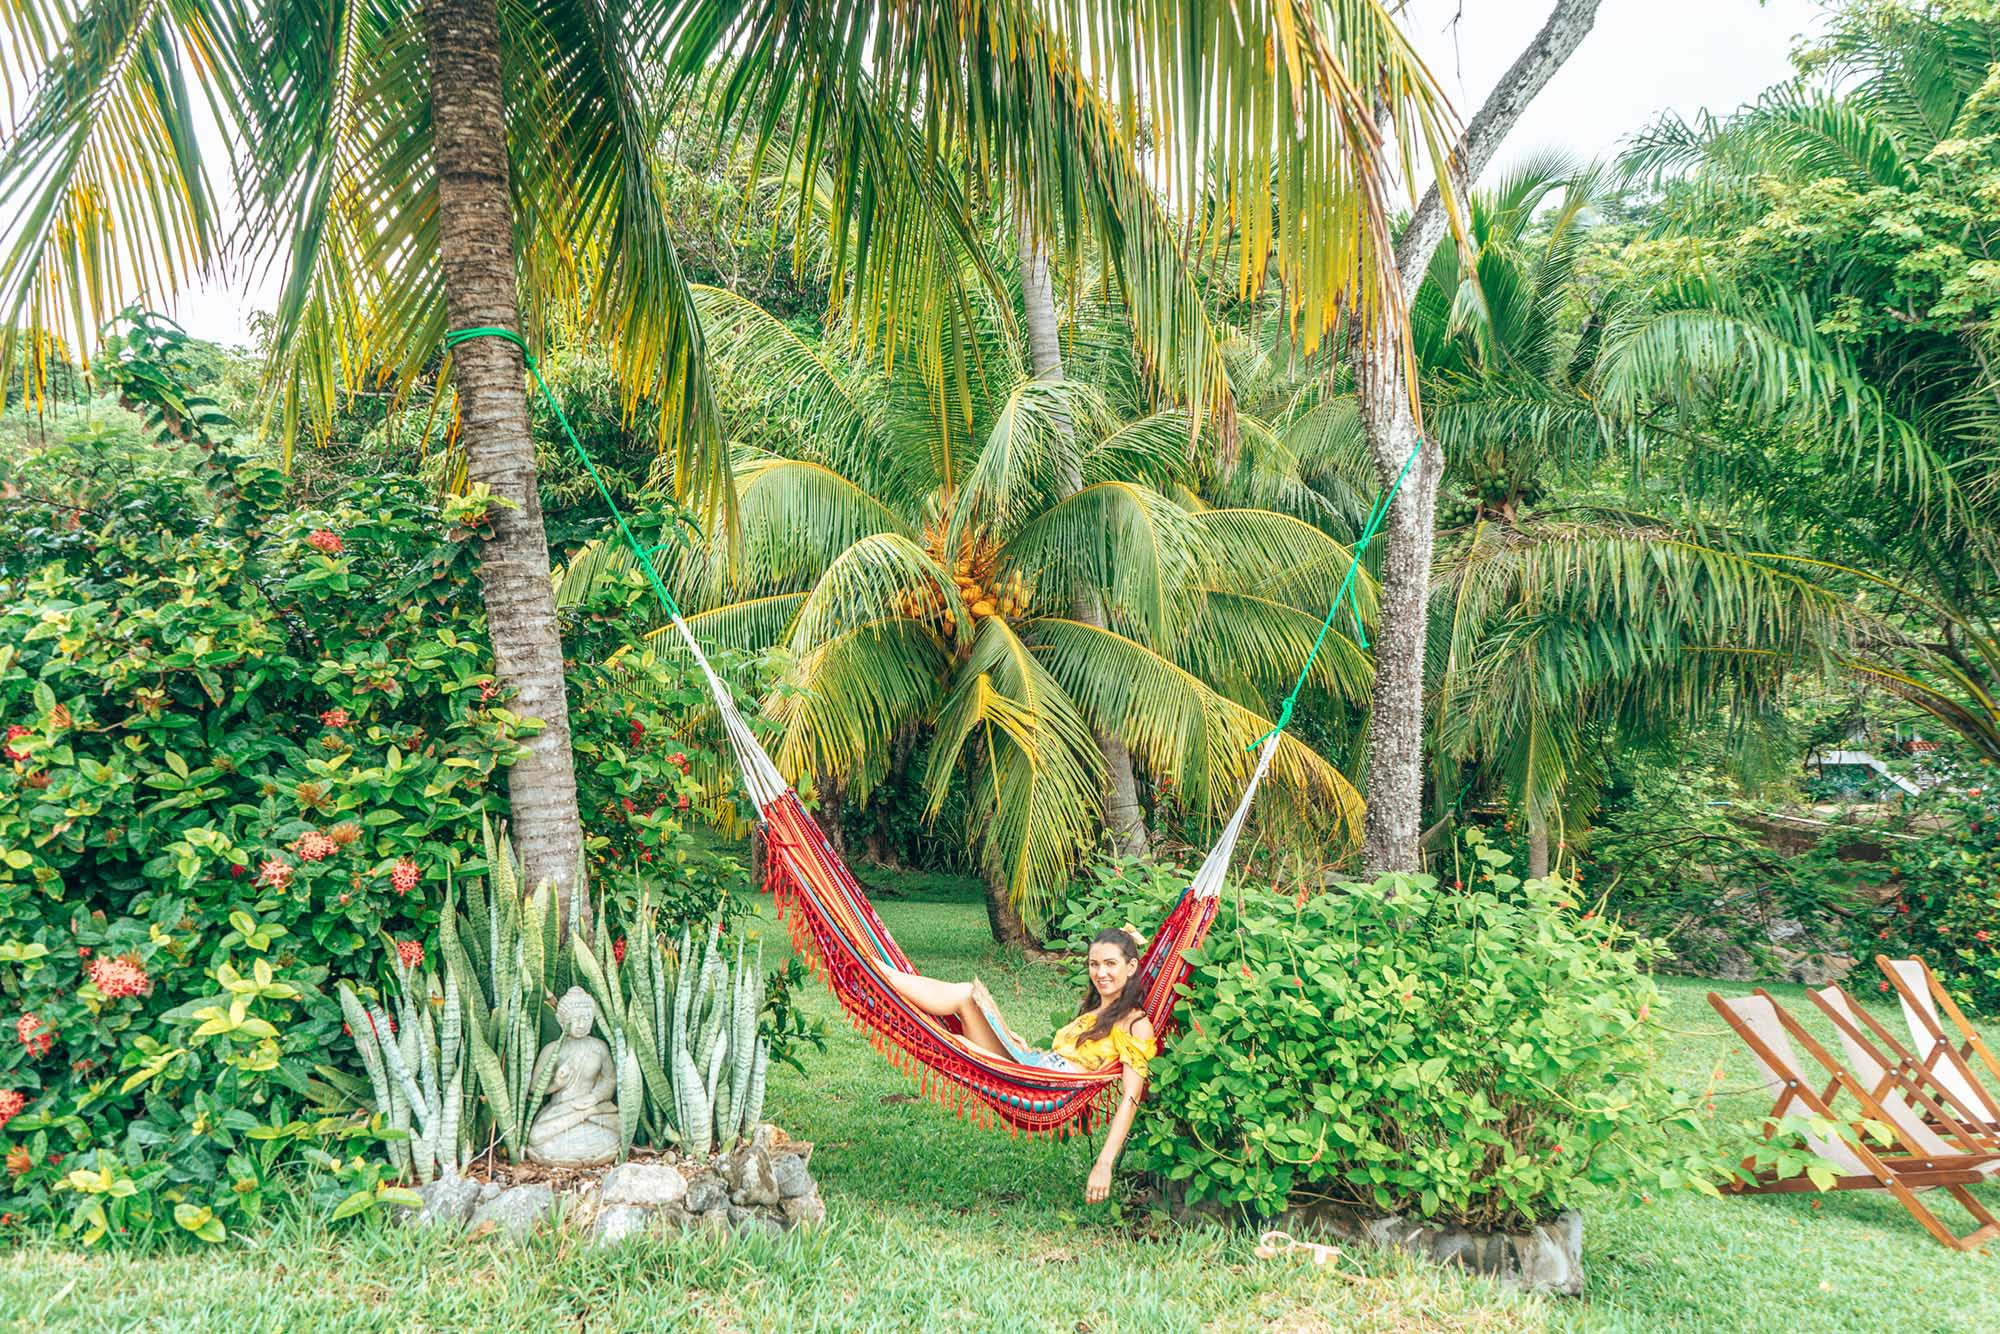 Lazing in a hammock at Montezuma Costa Rica